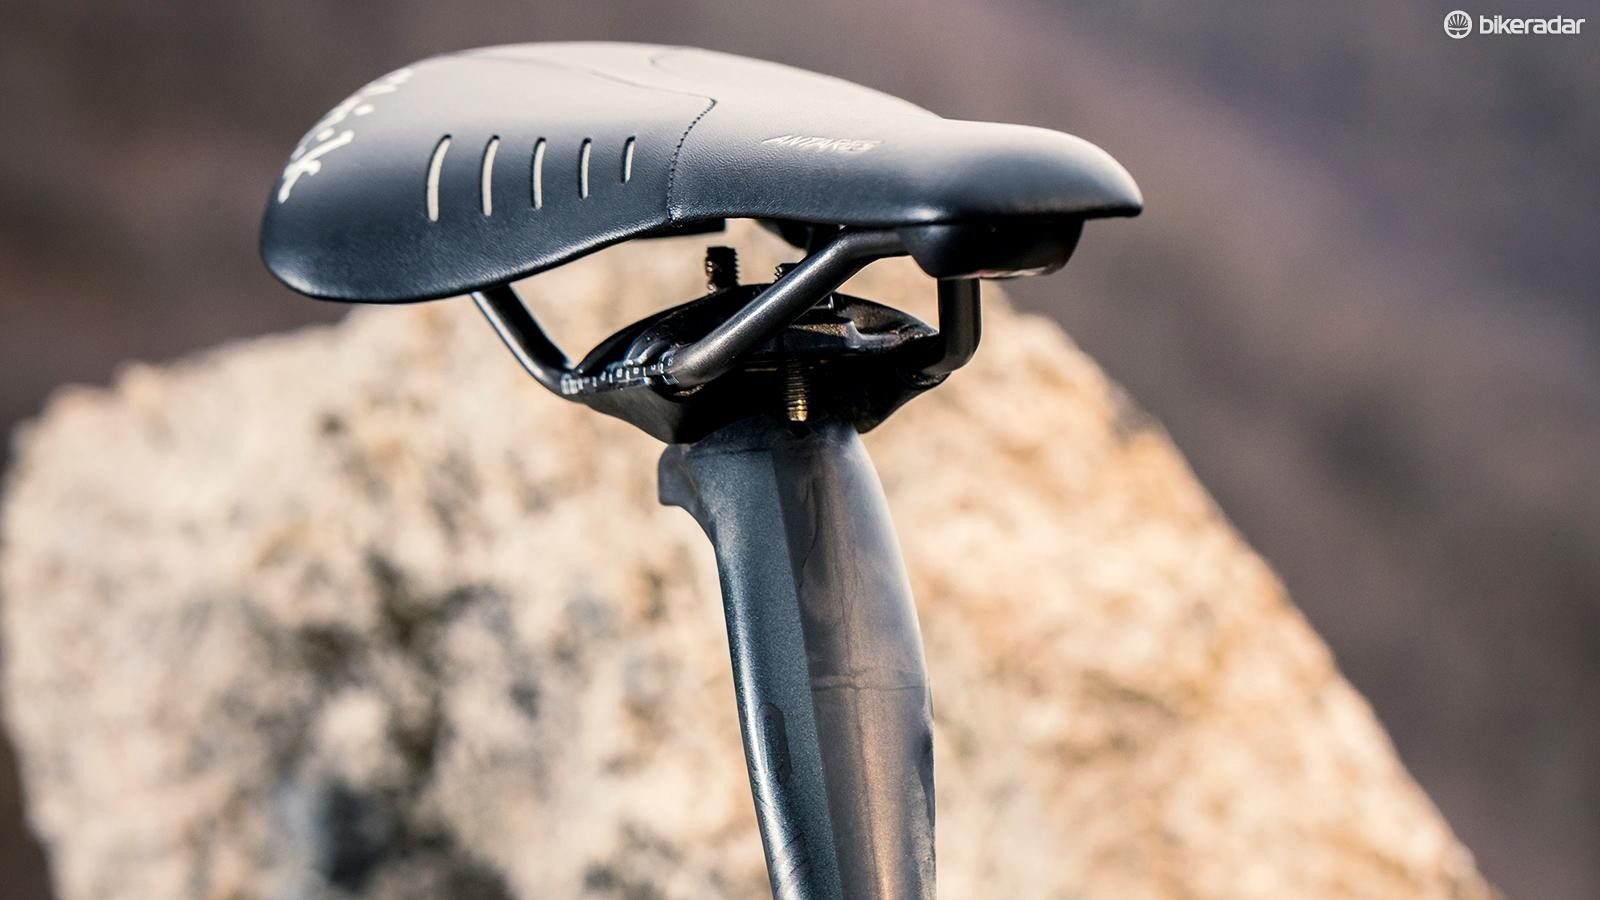 Fizik's Antares saddle sits on top of Cannondale's comfort-infused SAVE carbon post